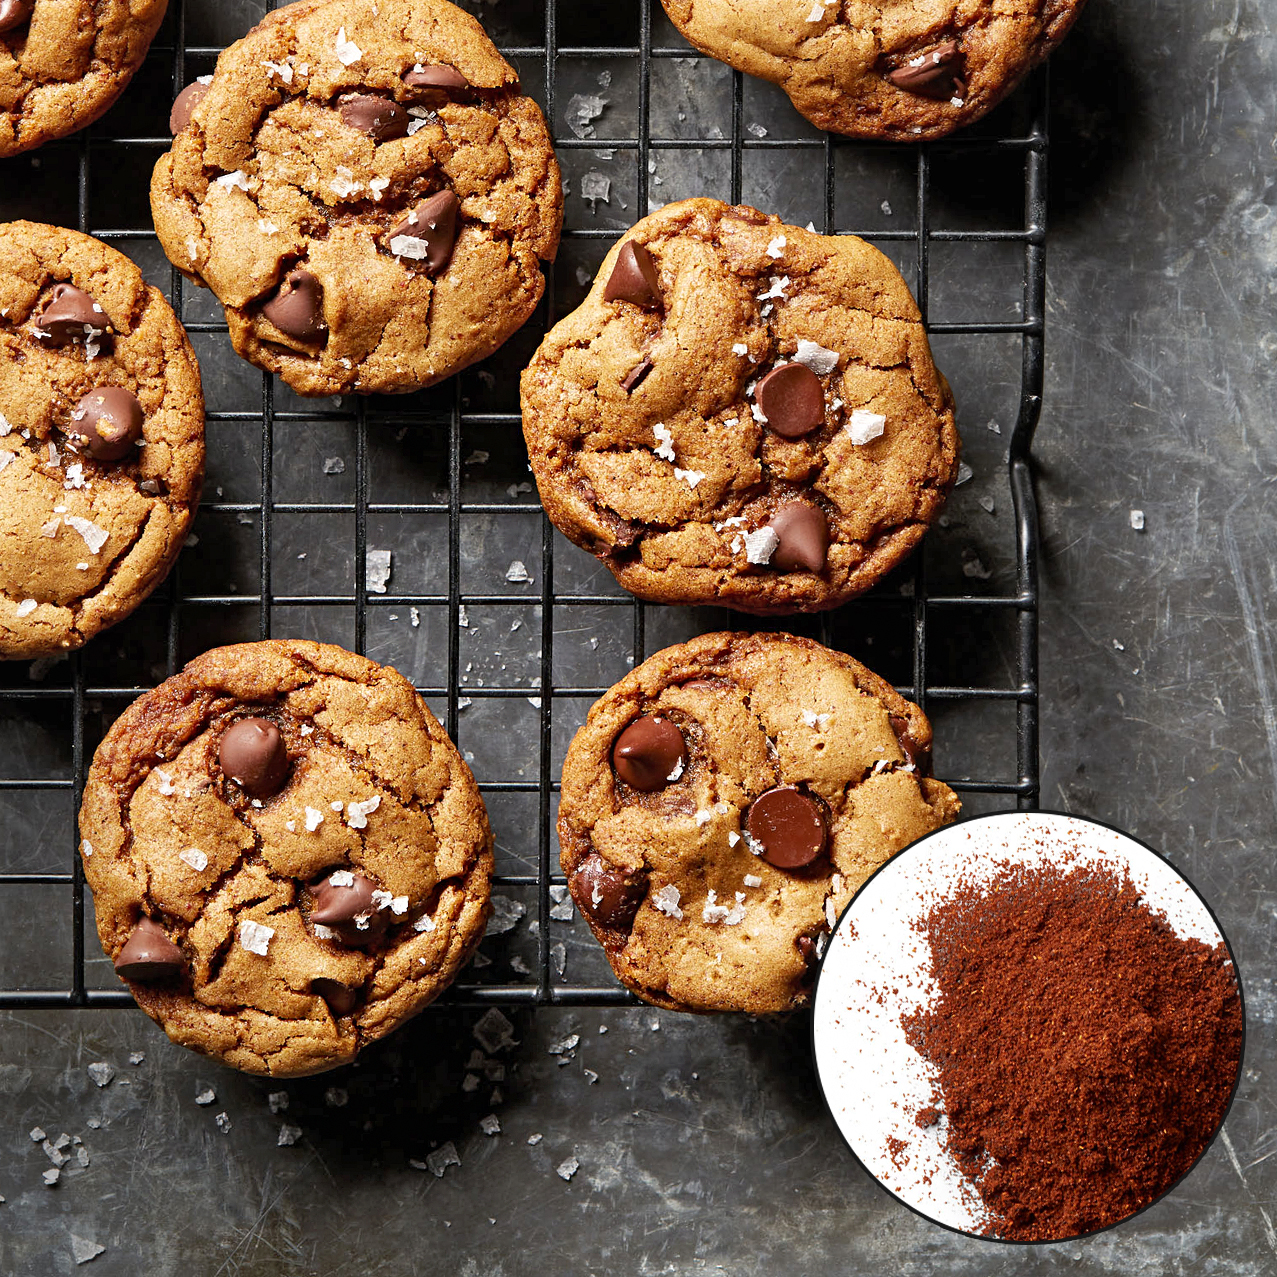 vegan chocolate chip ancho chile cookies with spice inset